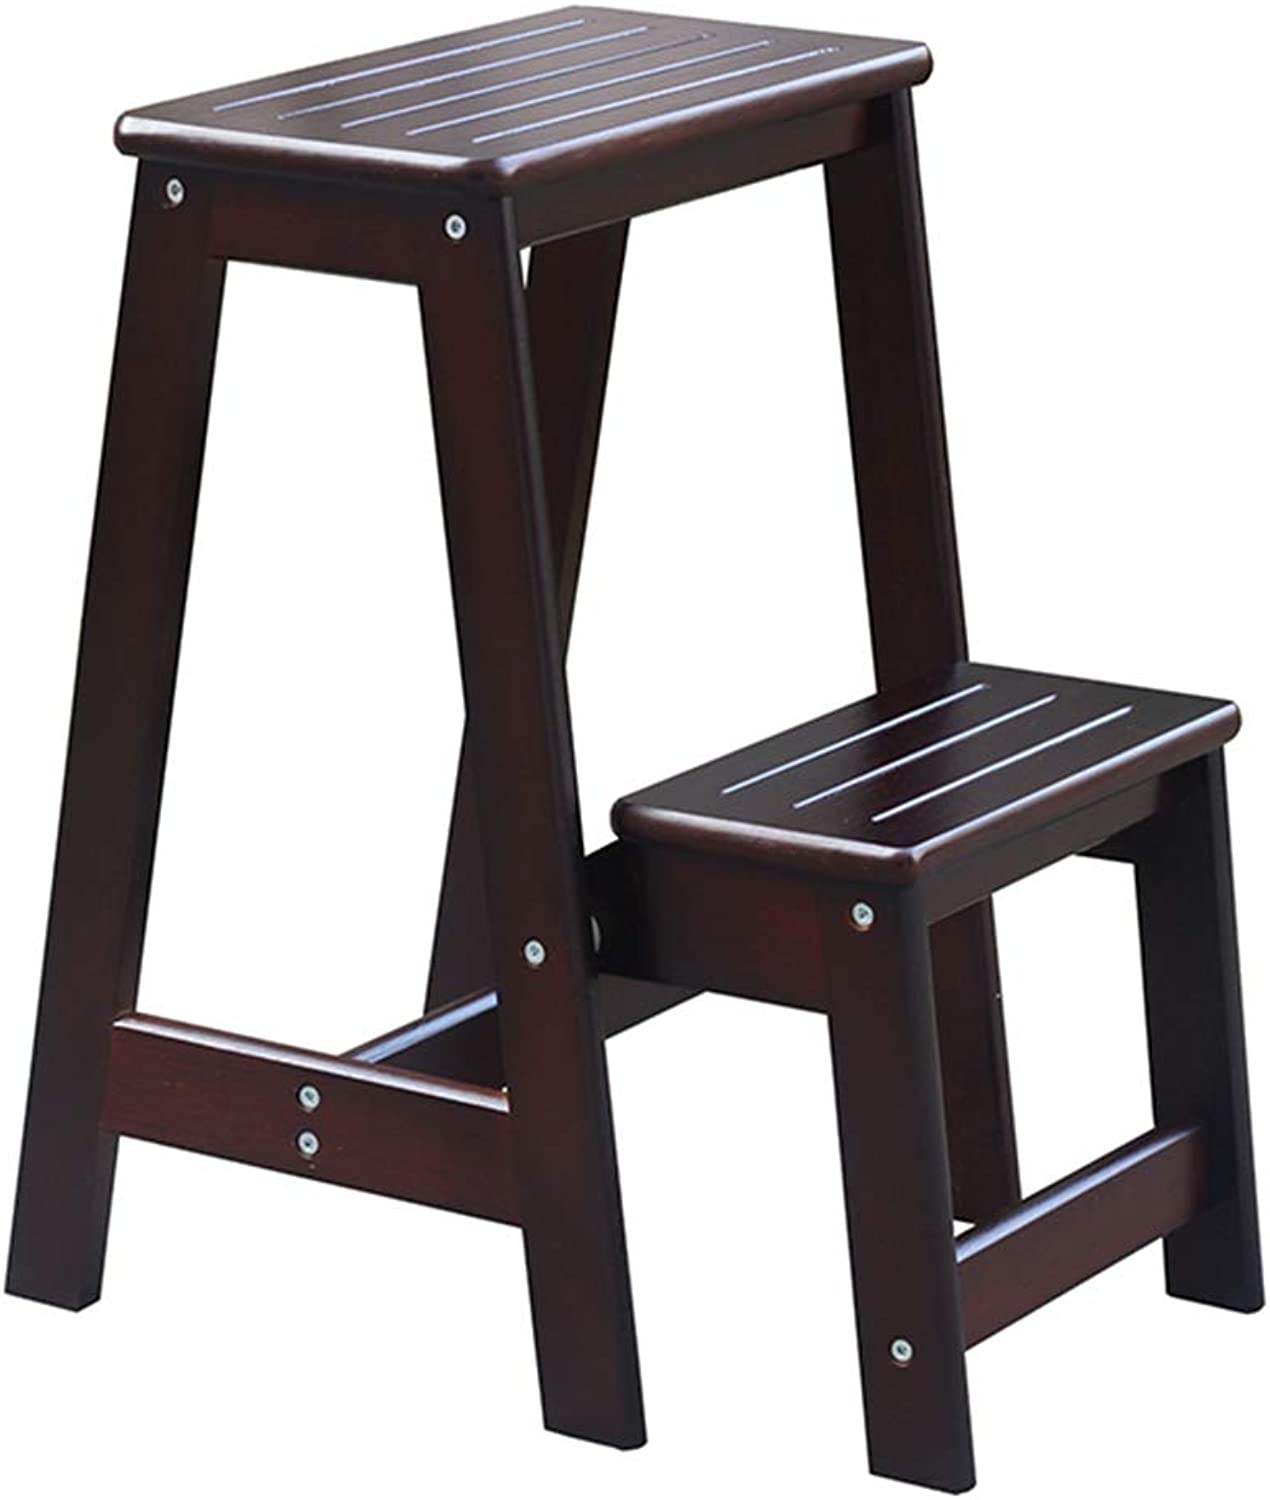 RMJAI Ladder Stool Ladder Stool Solid Wood Multifunction Foldable Thick Plate Non-Slip Design Environmentally Friendly, 2-Step Ladder (color   Brown)